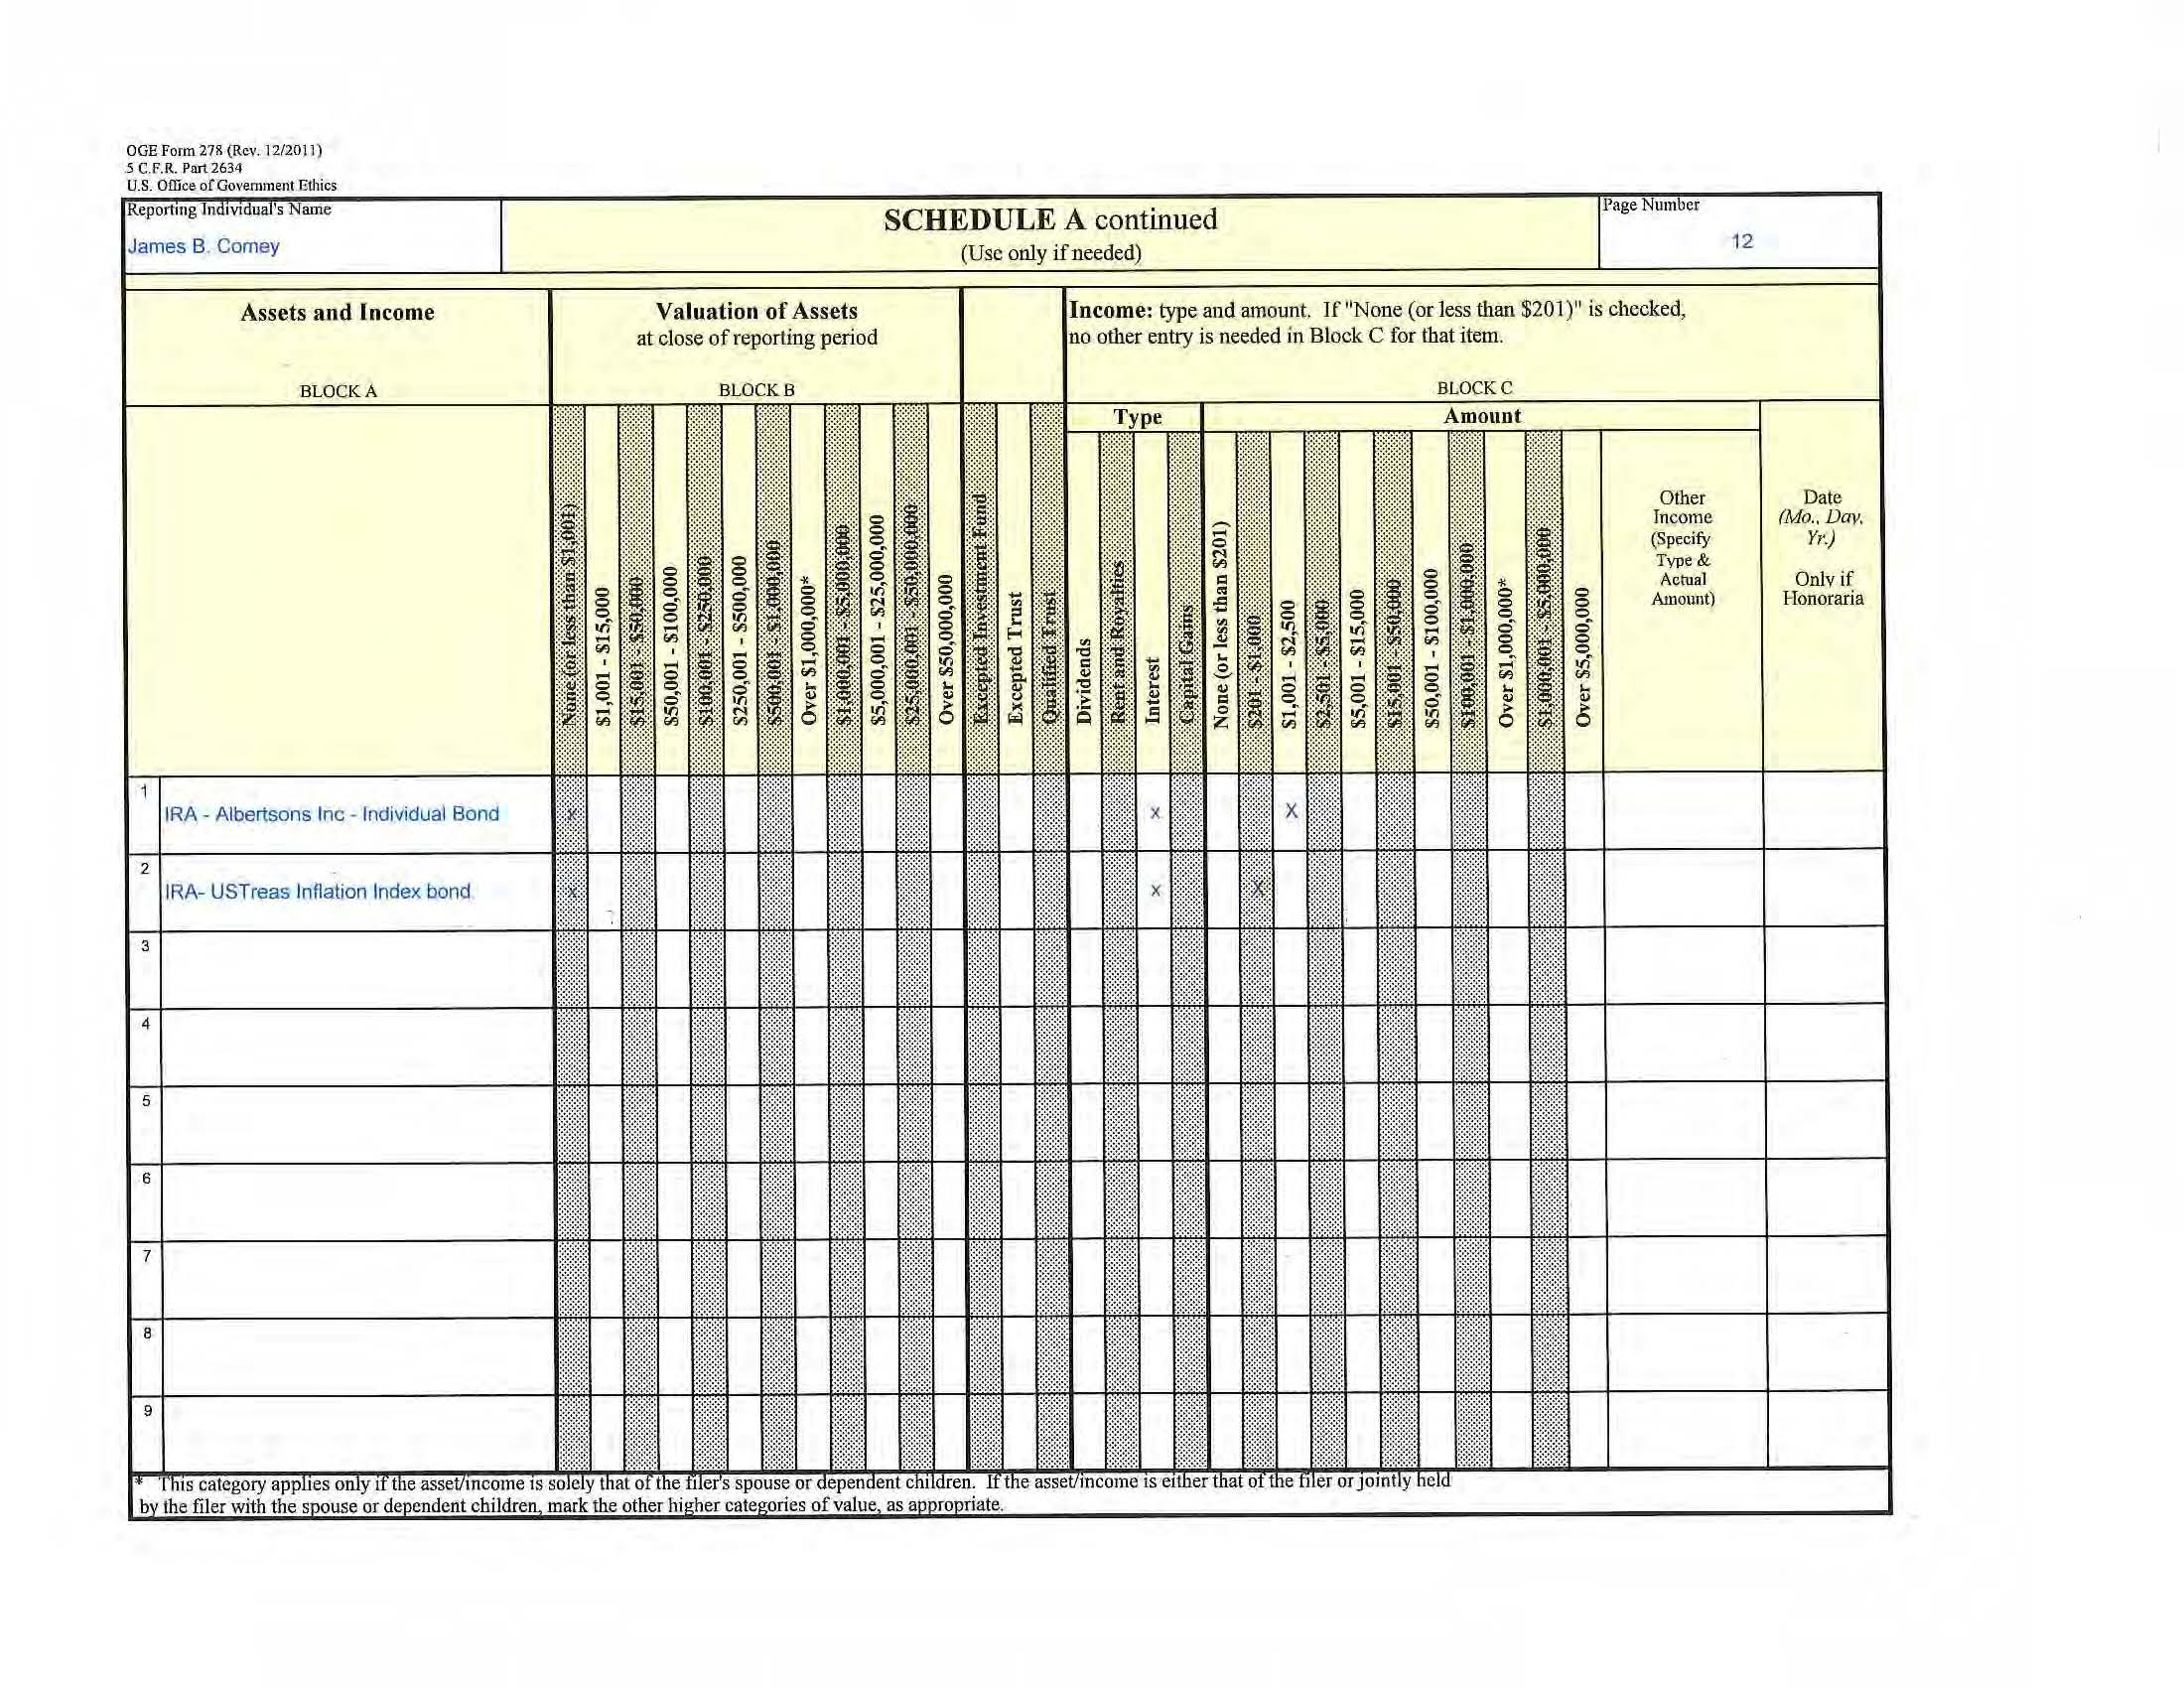 James-B-Comey-2013Form278NewEntrant_Page_12.jpg